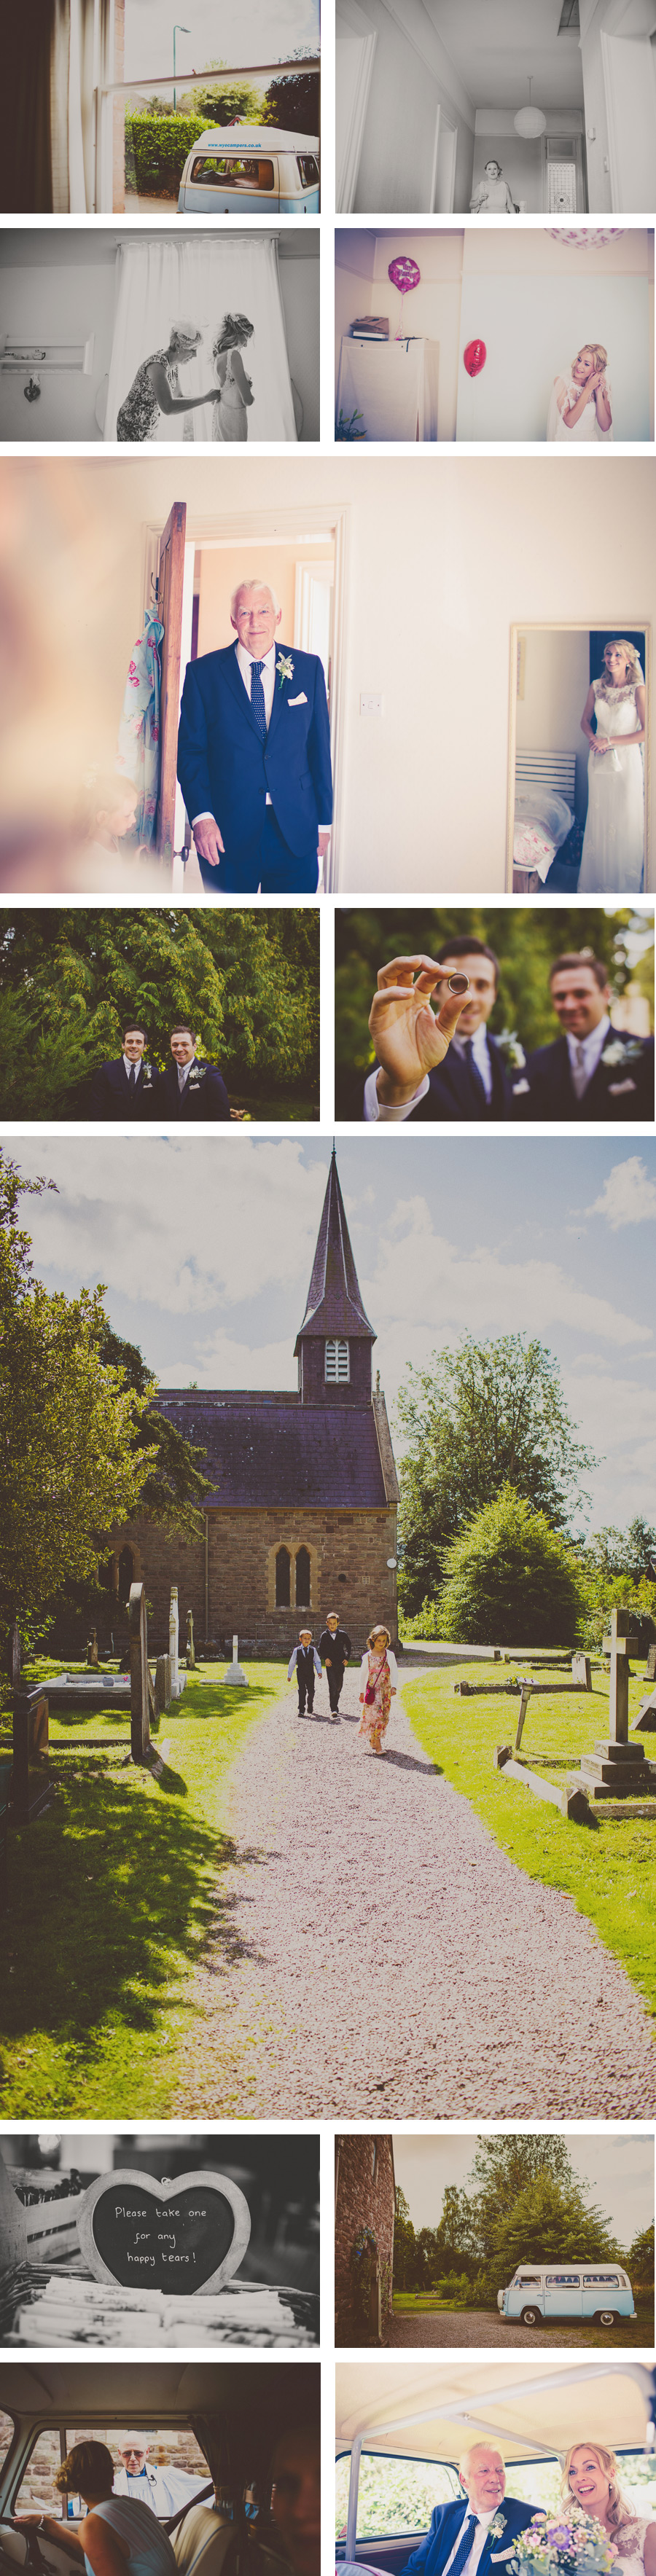 weddings at brobury house